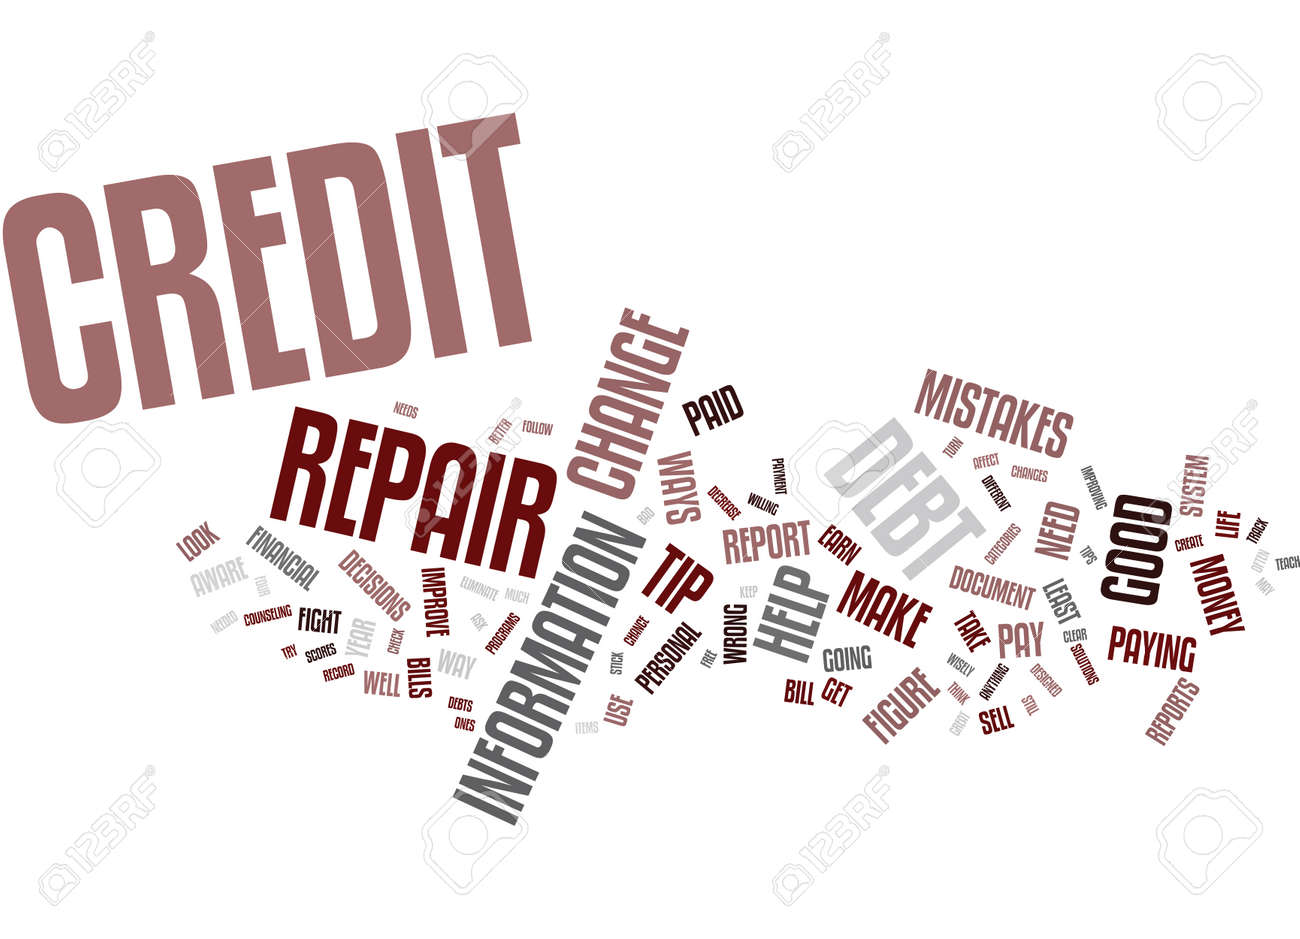 FOUR CREDIT REPAIR TIPS Text Background Word Cloud Concept - 82573481